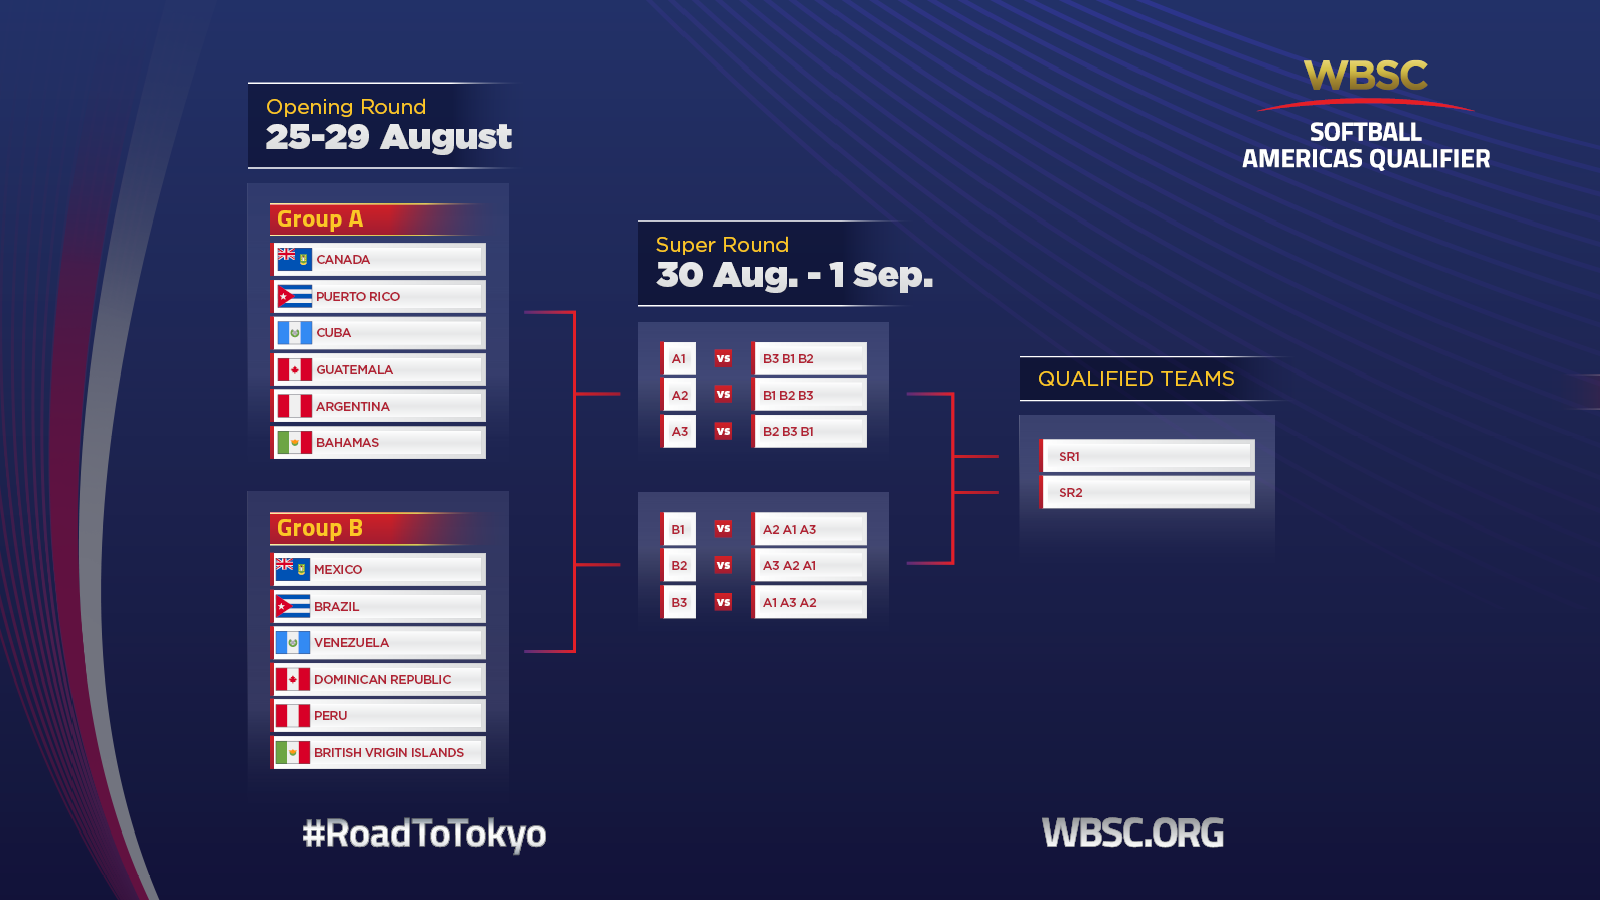 The two teams with the best overall records following the super round will earn qualification from the Americas into the Olympic softball tournament at Tokyo 2020 ©WBSC